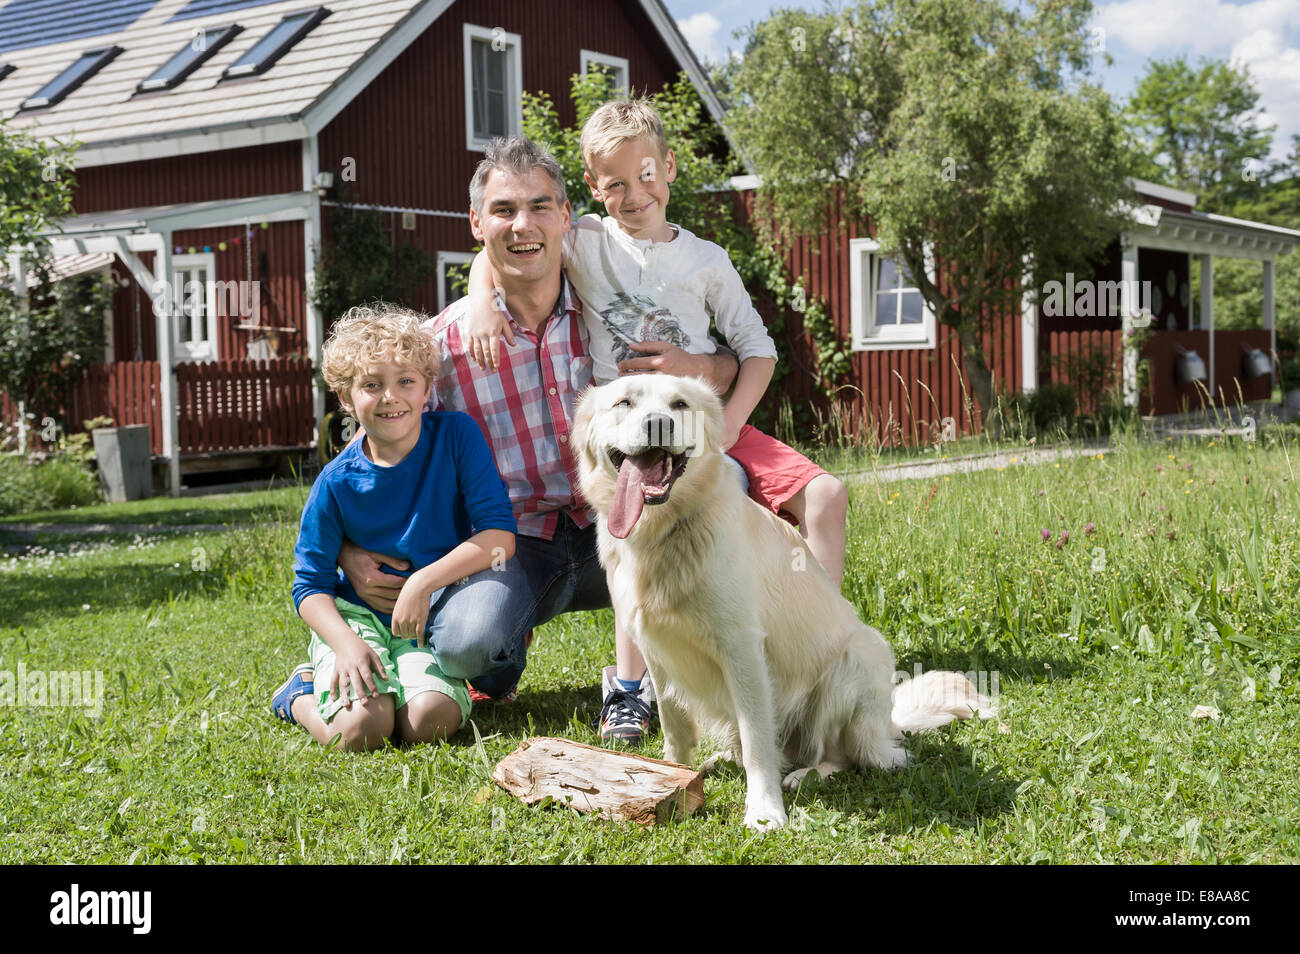 Young family father sons pet dog garden - Stock Image